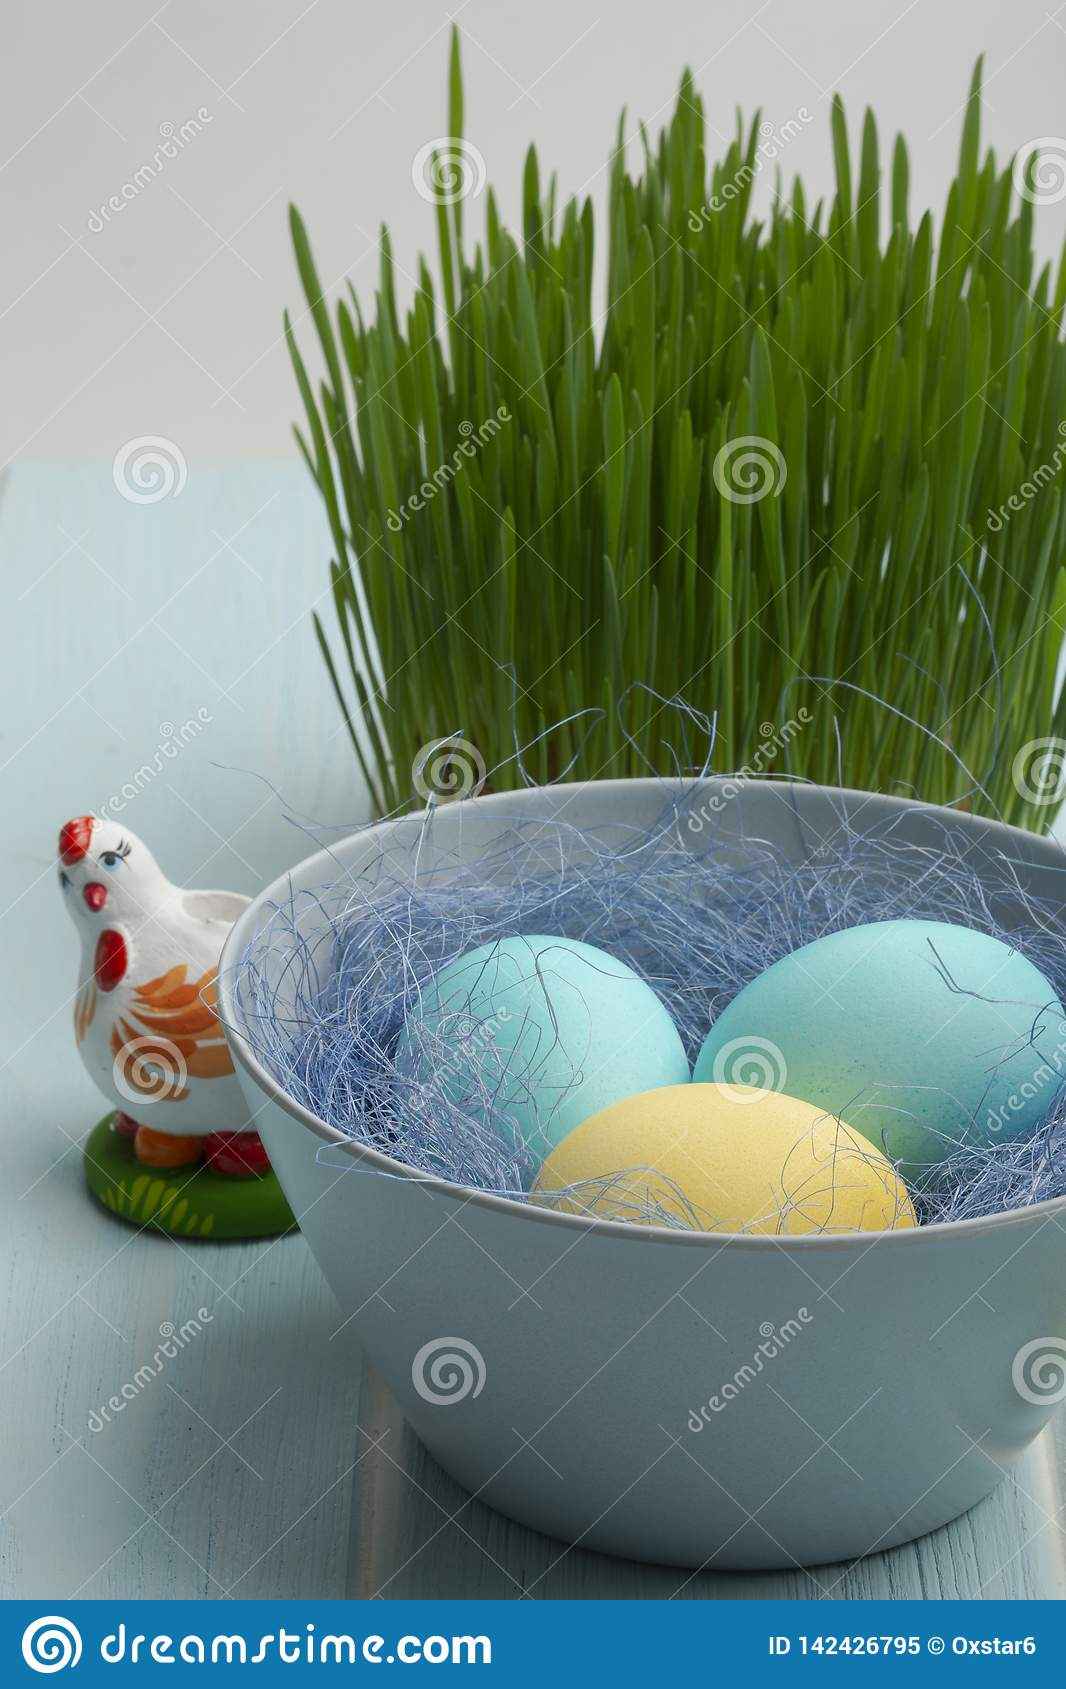 Dyed chicken eggs in a bowl